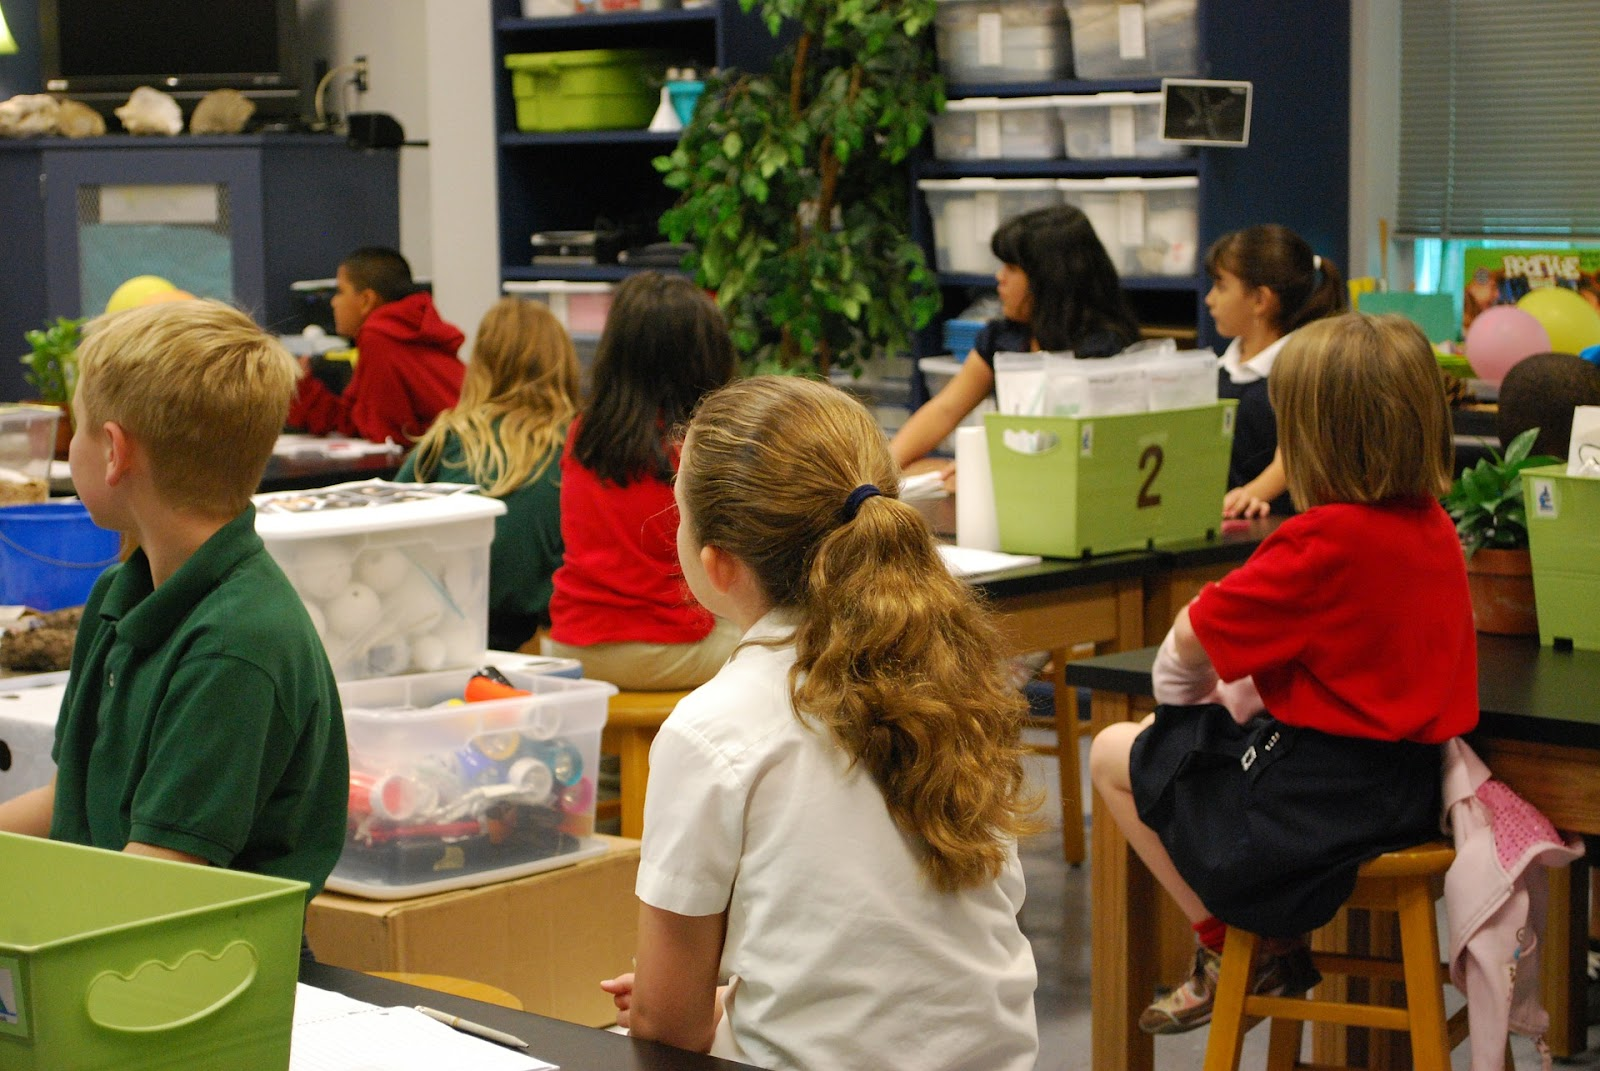 Students sit at tables in a classroom. There are numbered bins on some tables, and clear plastic bins on others. The bins are full of different types of STEM supplies. We can see styrofoam balls and colored cylinders in some of the bins.